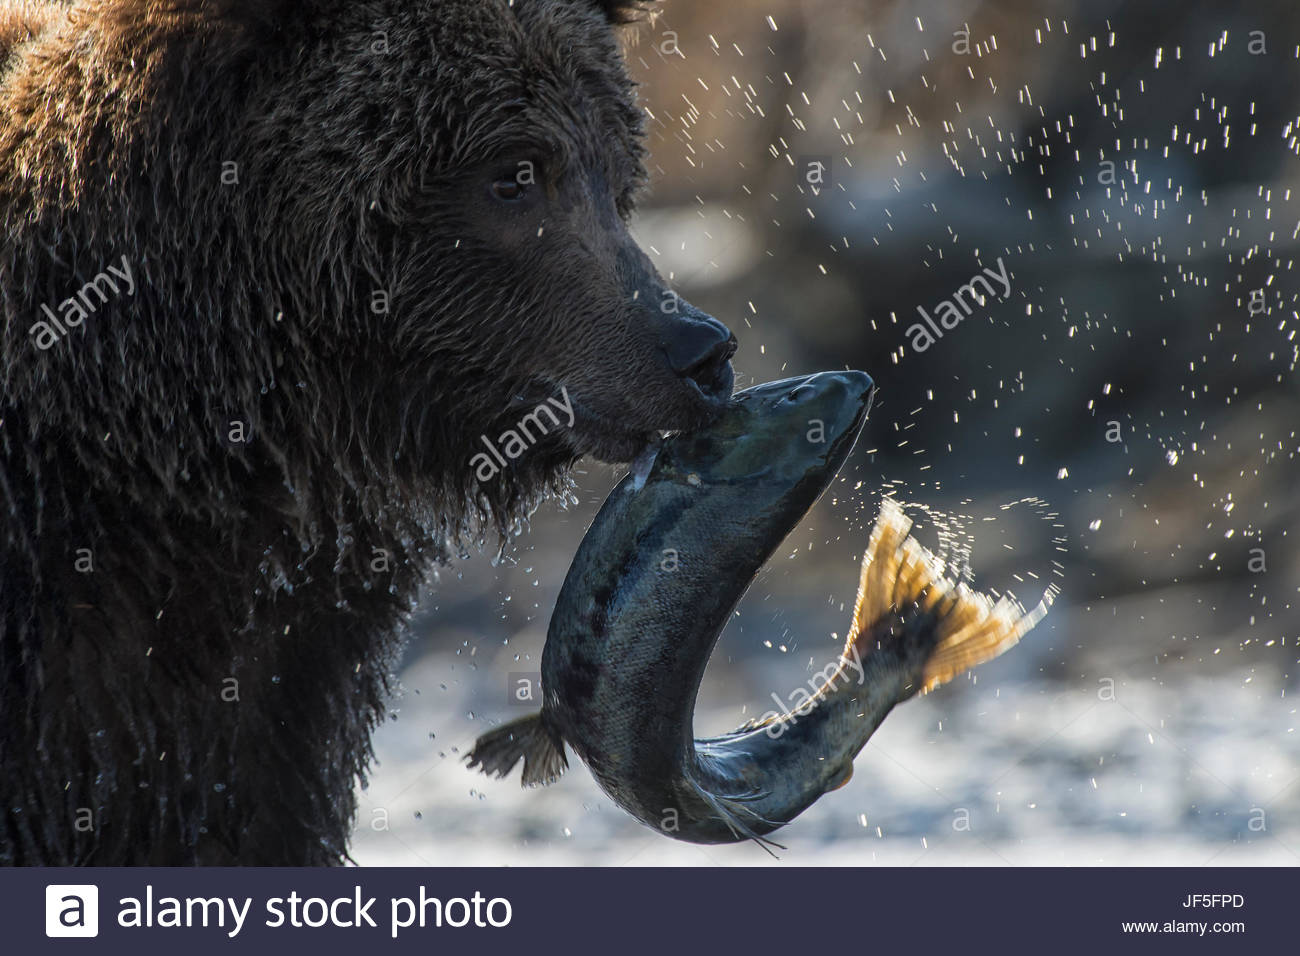 A grizzly bear with a freshly caught salmon. - Stock Image